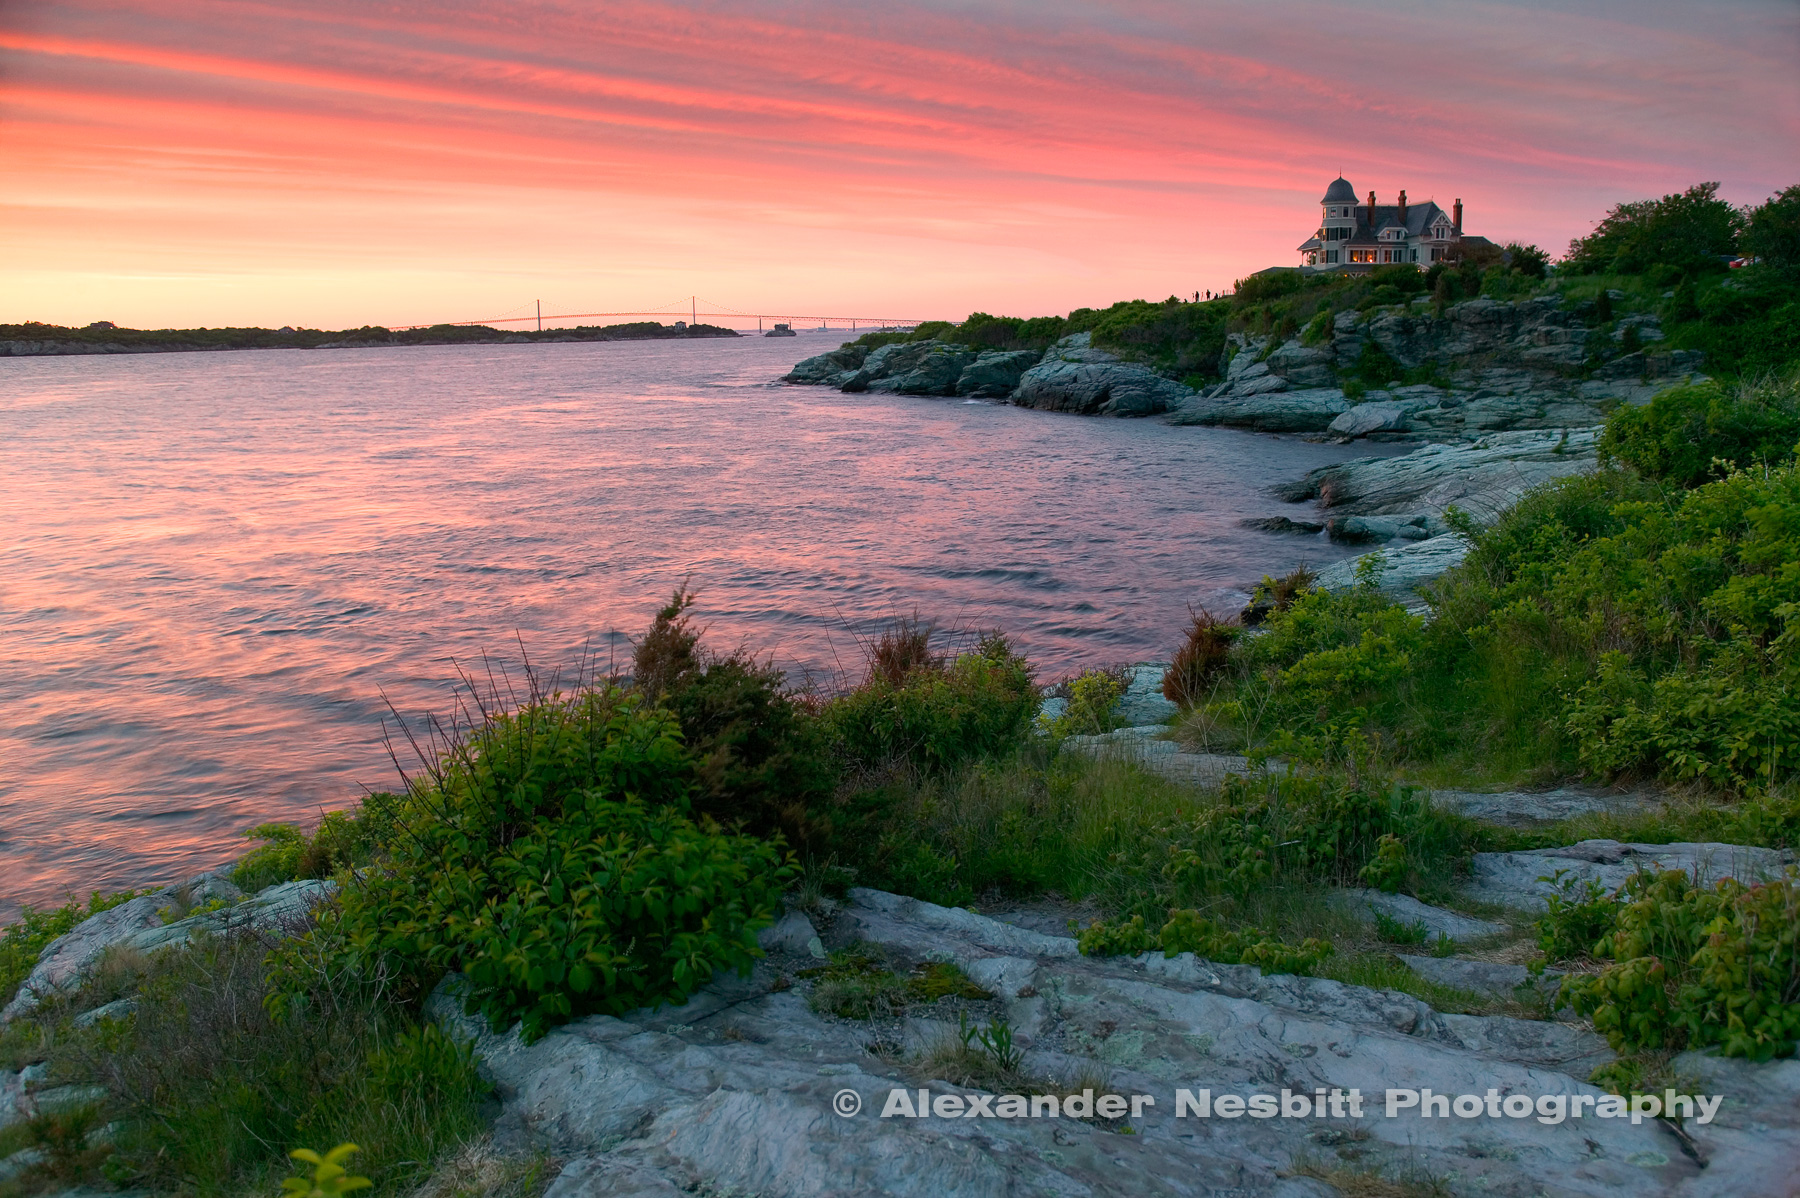 USA, Newport, RI - Sunset at Castle Hill Inn and Resort with the view north up the east passage of Narragansett bay.